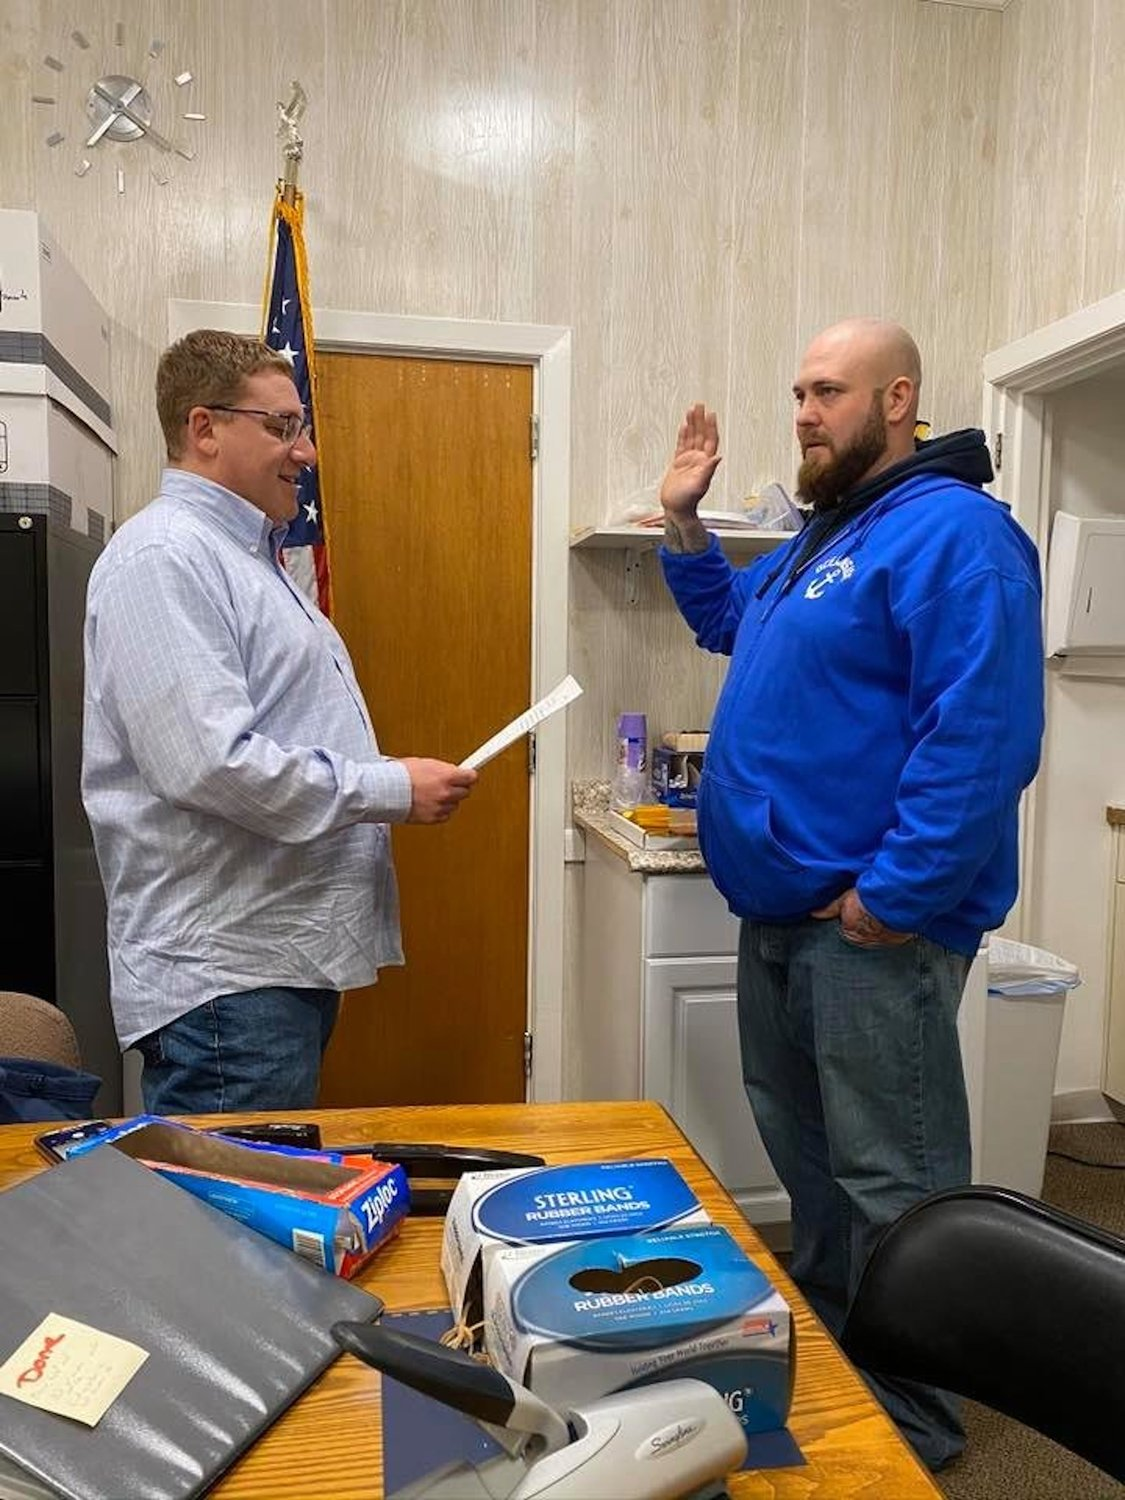 Oceanside Sanitation District No. 7 Commissioner Ryan Hemsley, right, being sworn in by Chairman Austin Graff, said he would not resign after controversial Facebook posts he was alleged to have made surfaced.